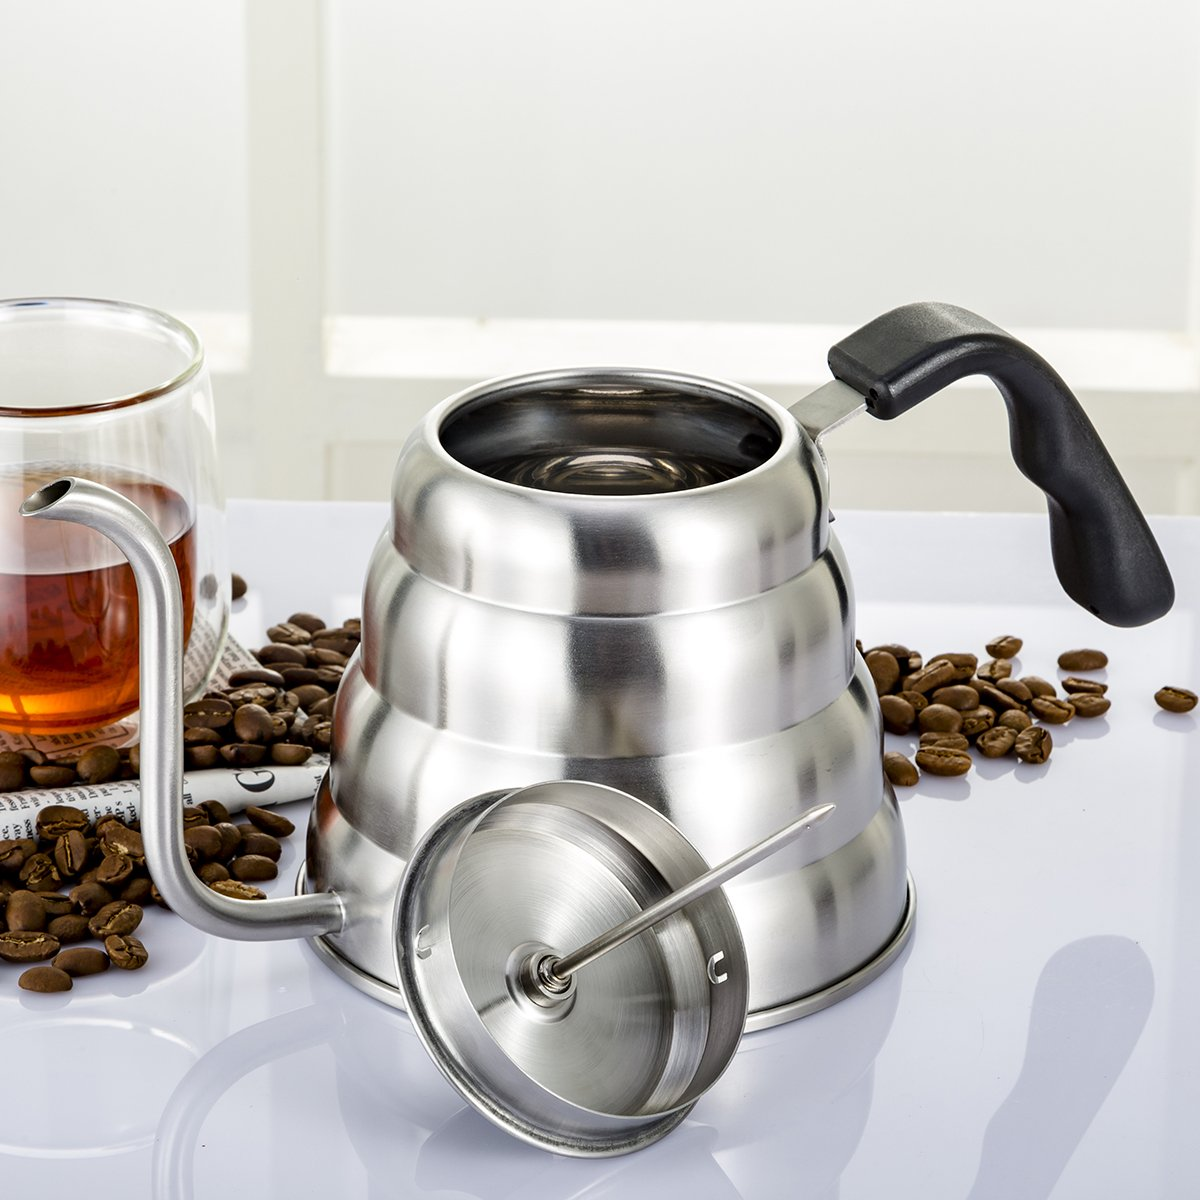 Coffee Kettle with Thermometer for Exact Temperature, 1.2Liter(41floz), Gooseneck Drip Kettle for Coffee, Tea, Home Brewing, Camping and Traveling by ECPURCHASE by ECPURCHASE (Image #6)